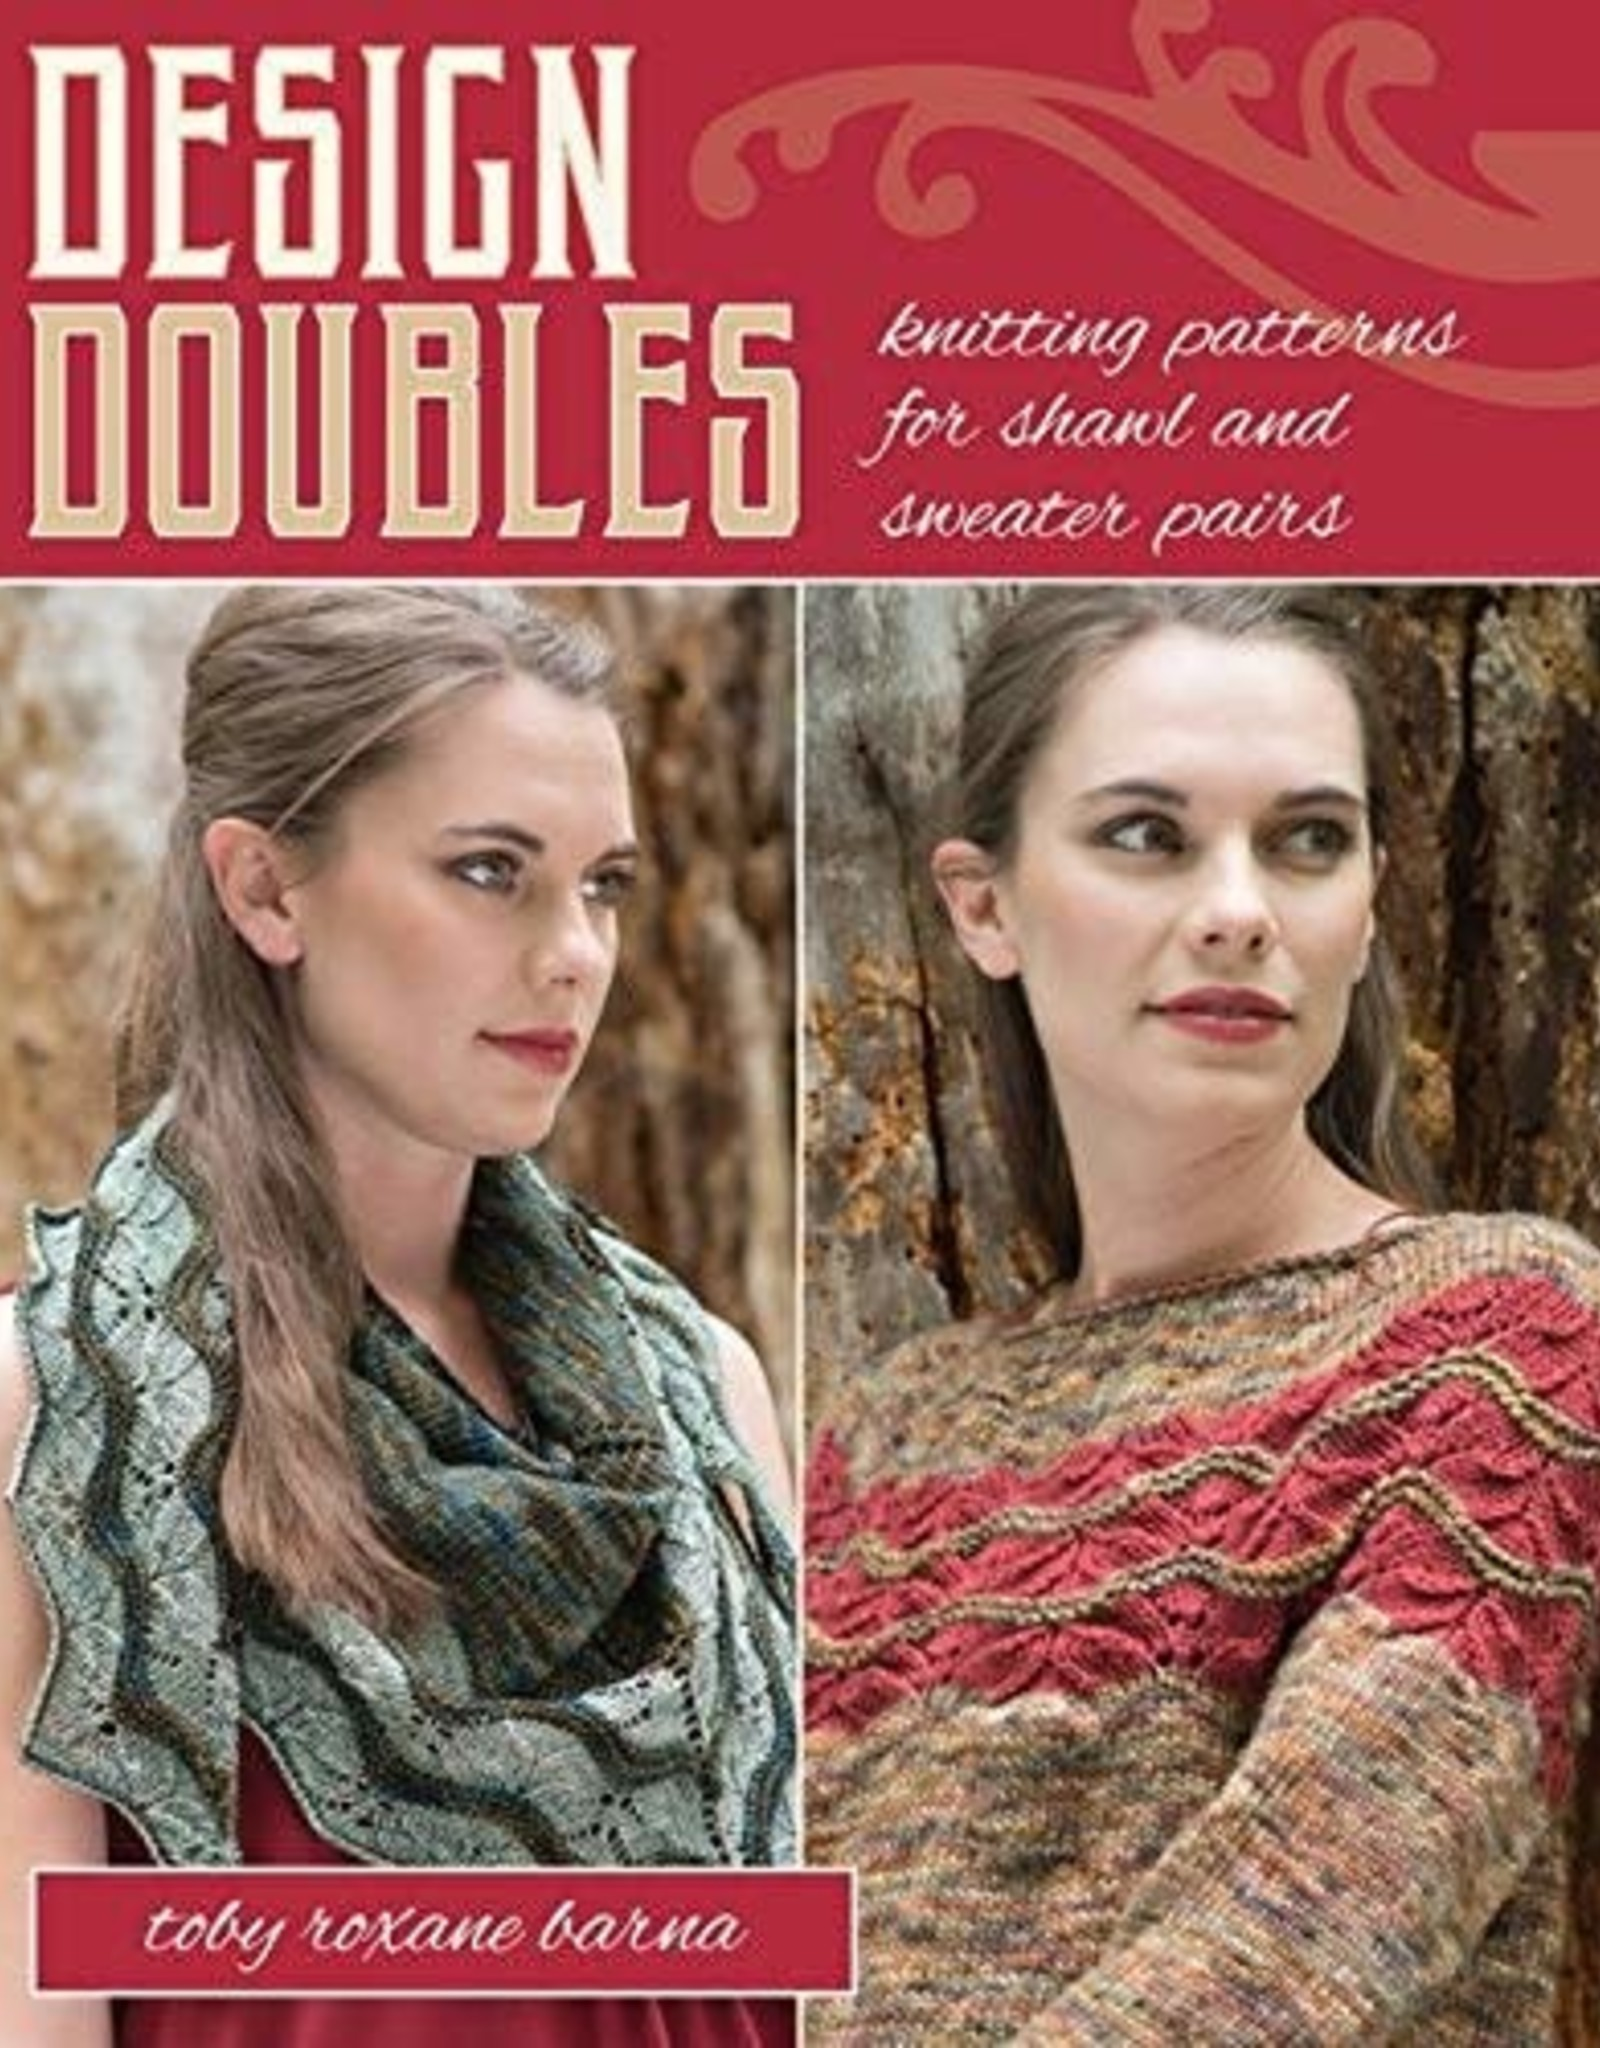 Design Doubles: Knitting Patterns for Shawl and Sweater Pairs